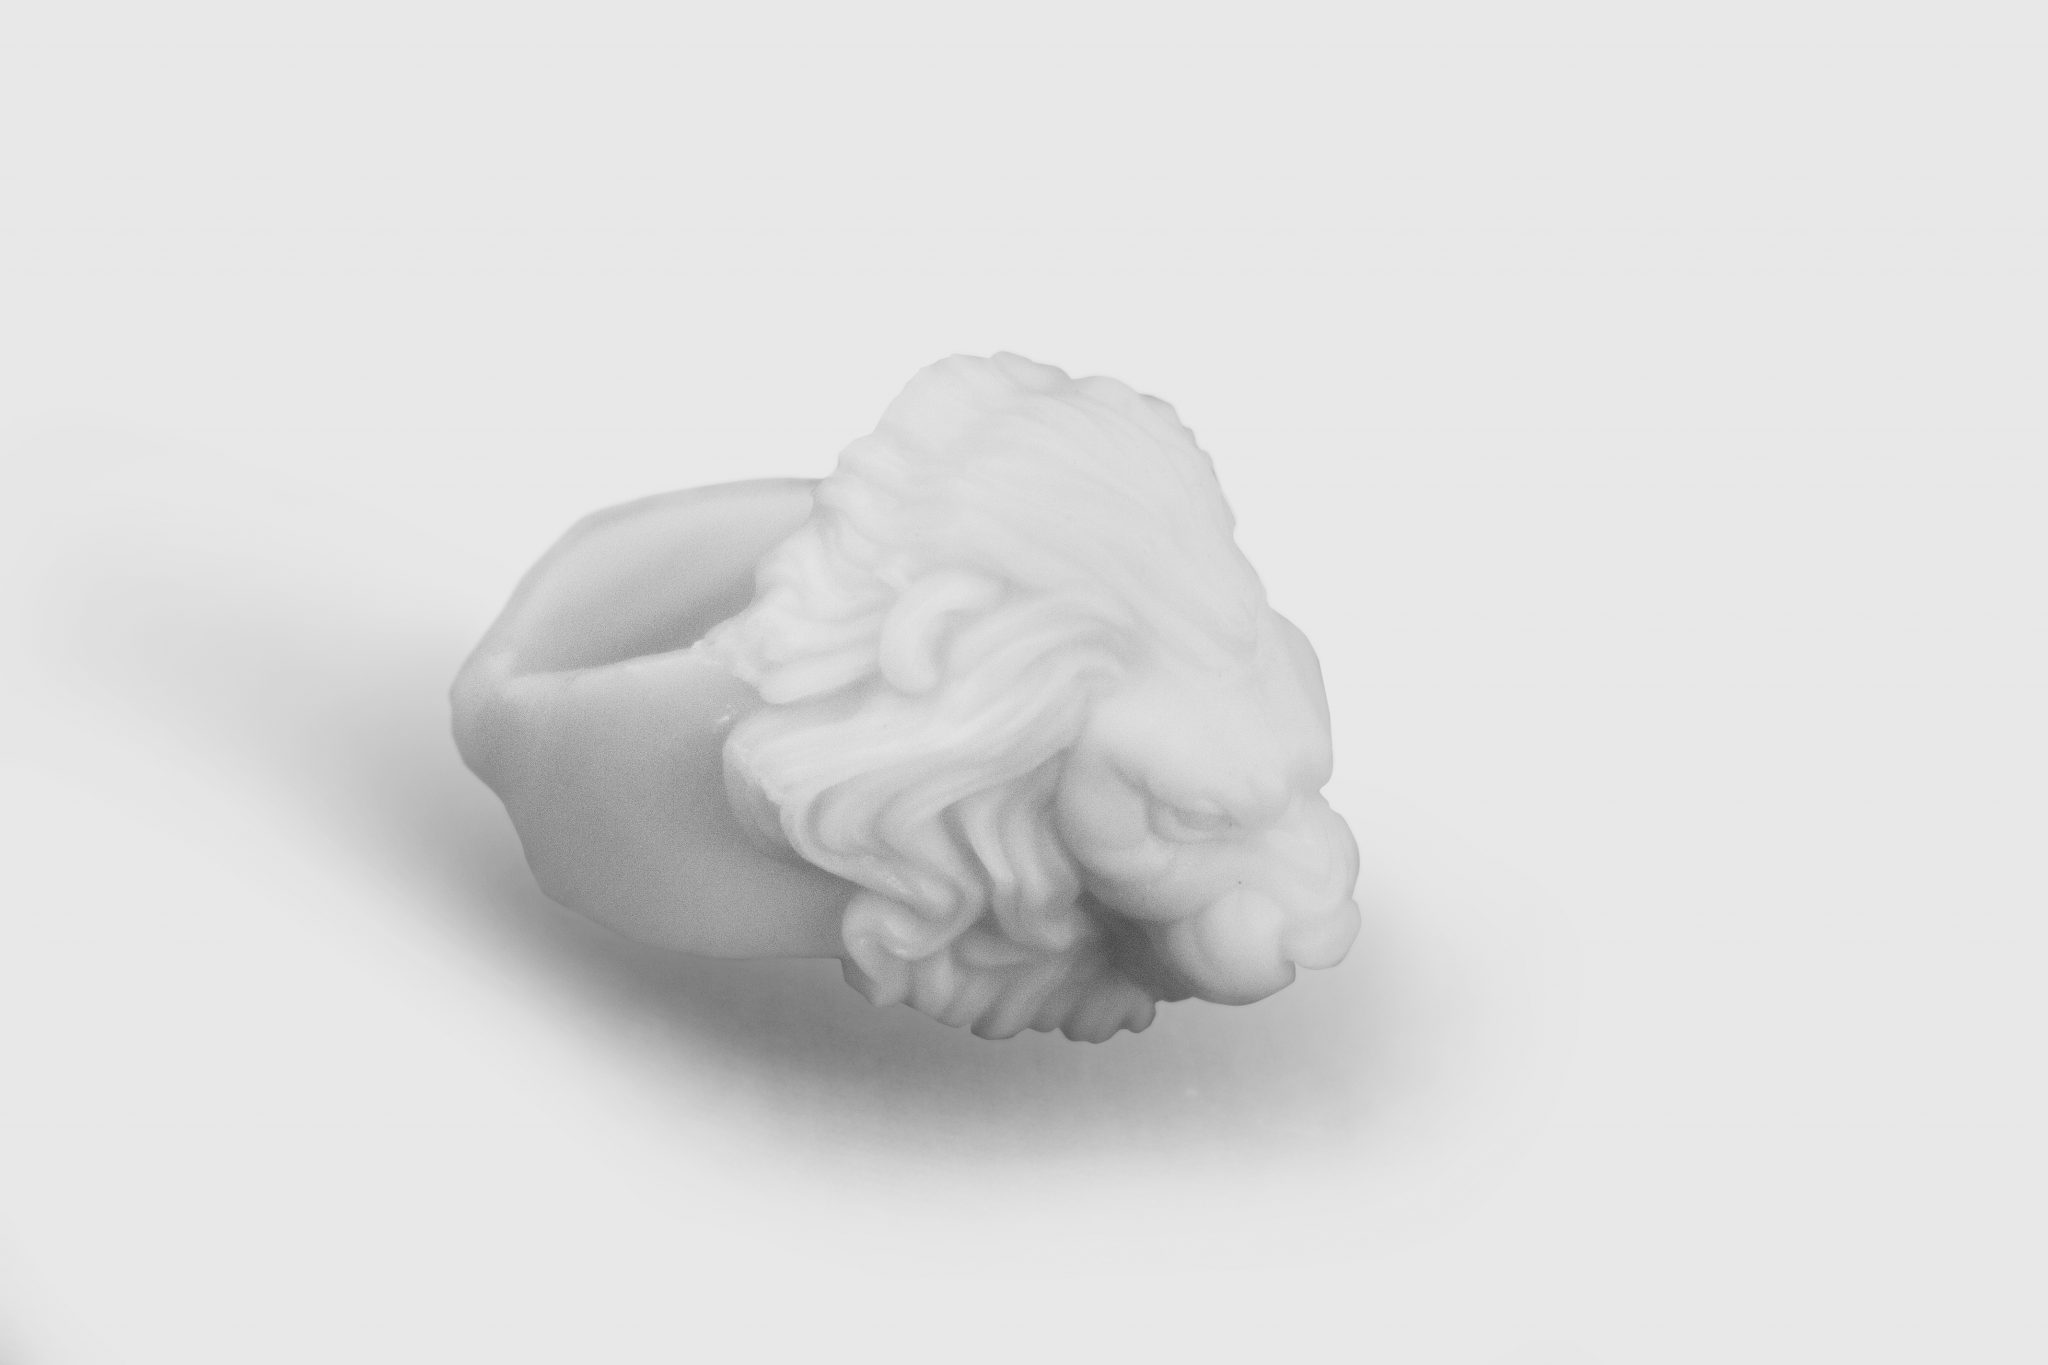 Close-up of the lion ring model.